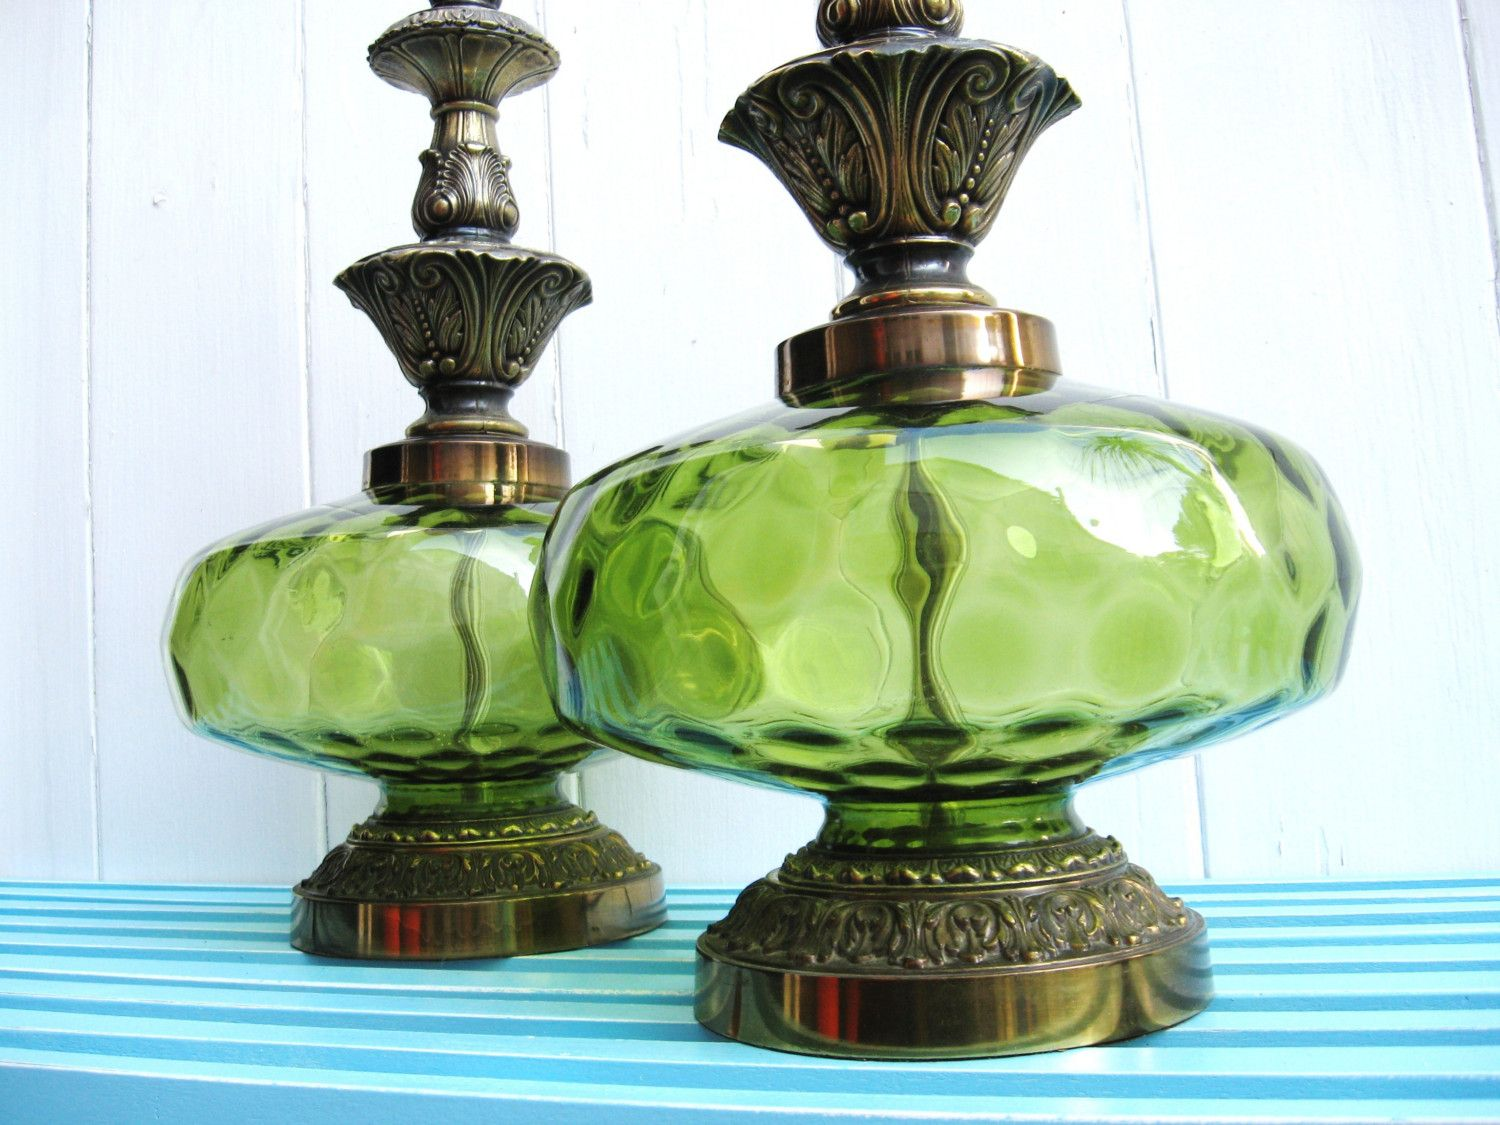 Antique bedside table lamps - Vintage Table Lamps Yes